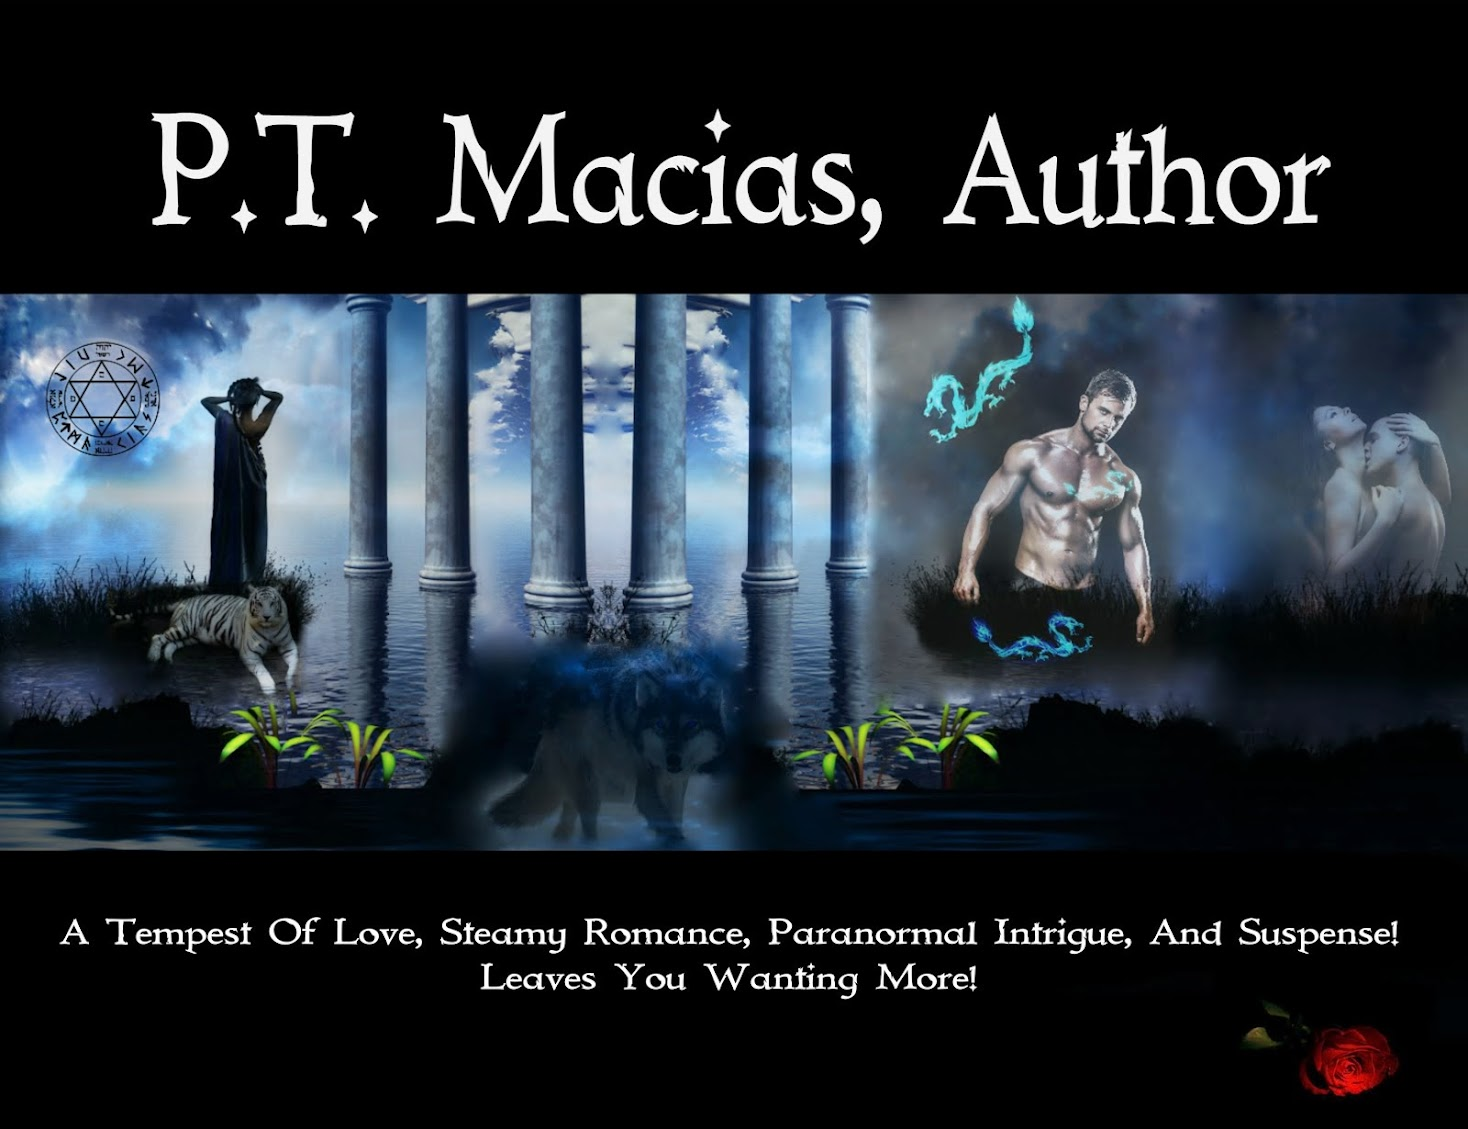 P.T. Macias, Author